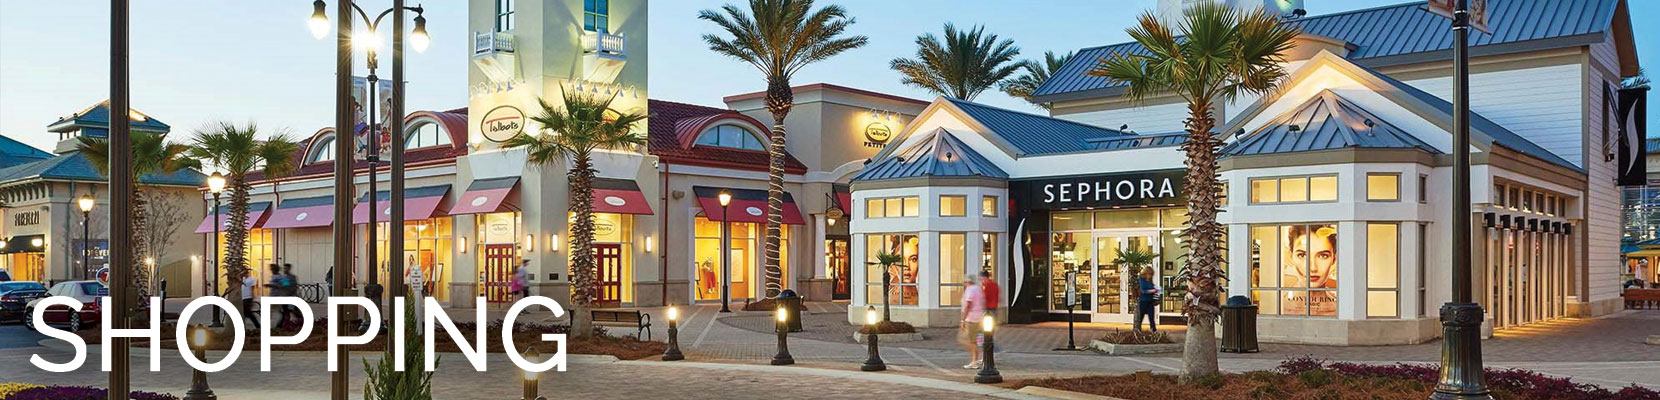 Destin shopping near St. Kitts condo.